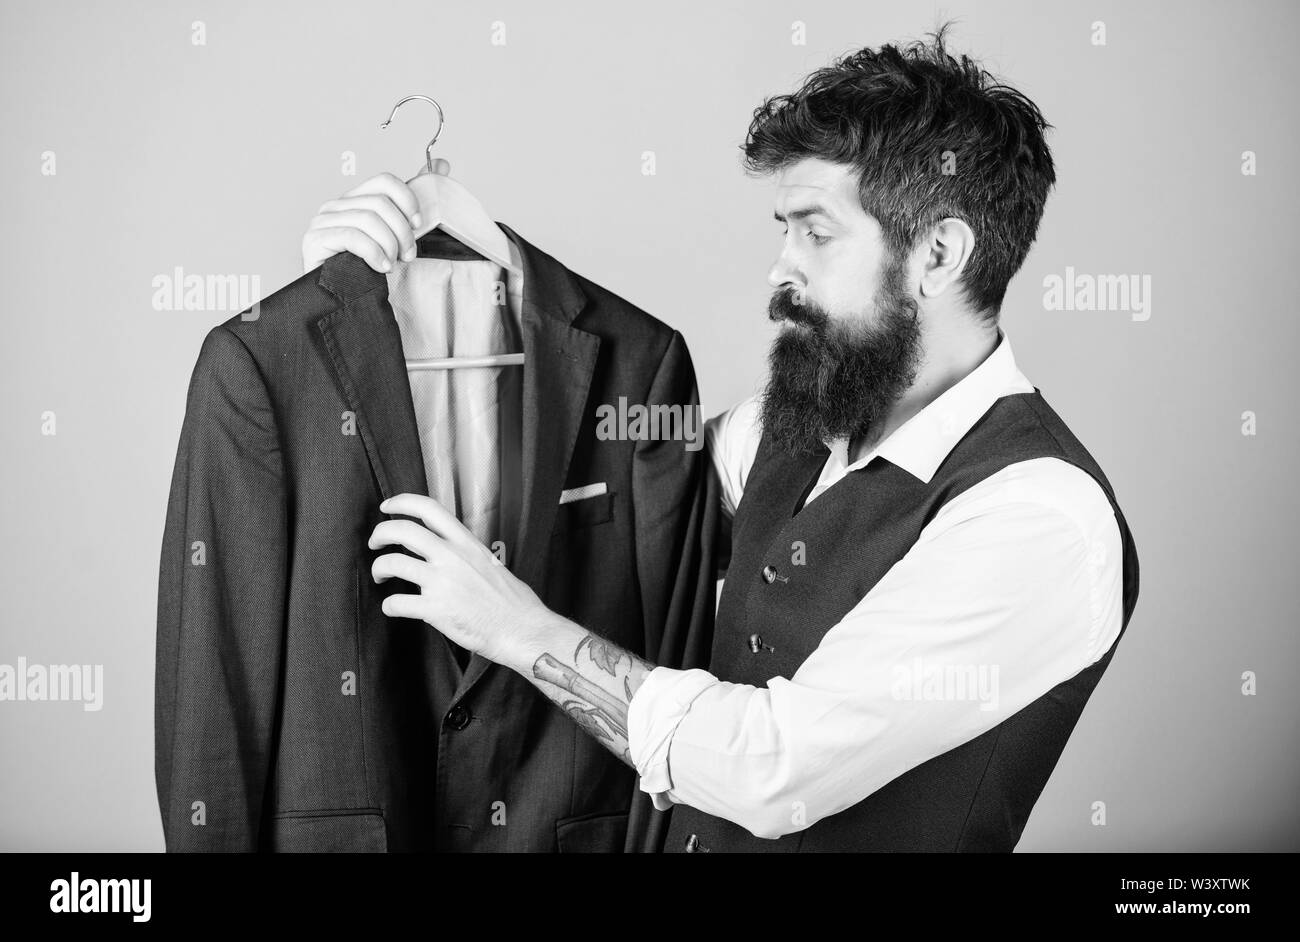 Tailoring and clothes design. Perfect fit. Custom made to measure. Tailored suit concept. Designing made to measure suit. Custom made suit. Man bearded fashion couturier tailor. Elegant custom outfit. - Stock Image